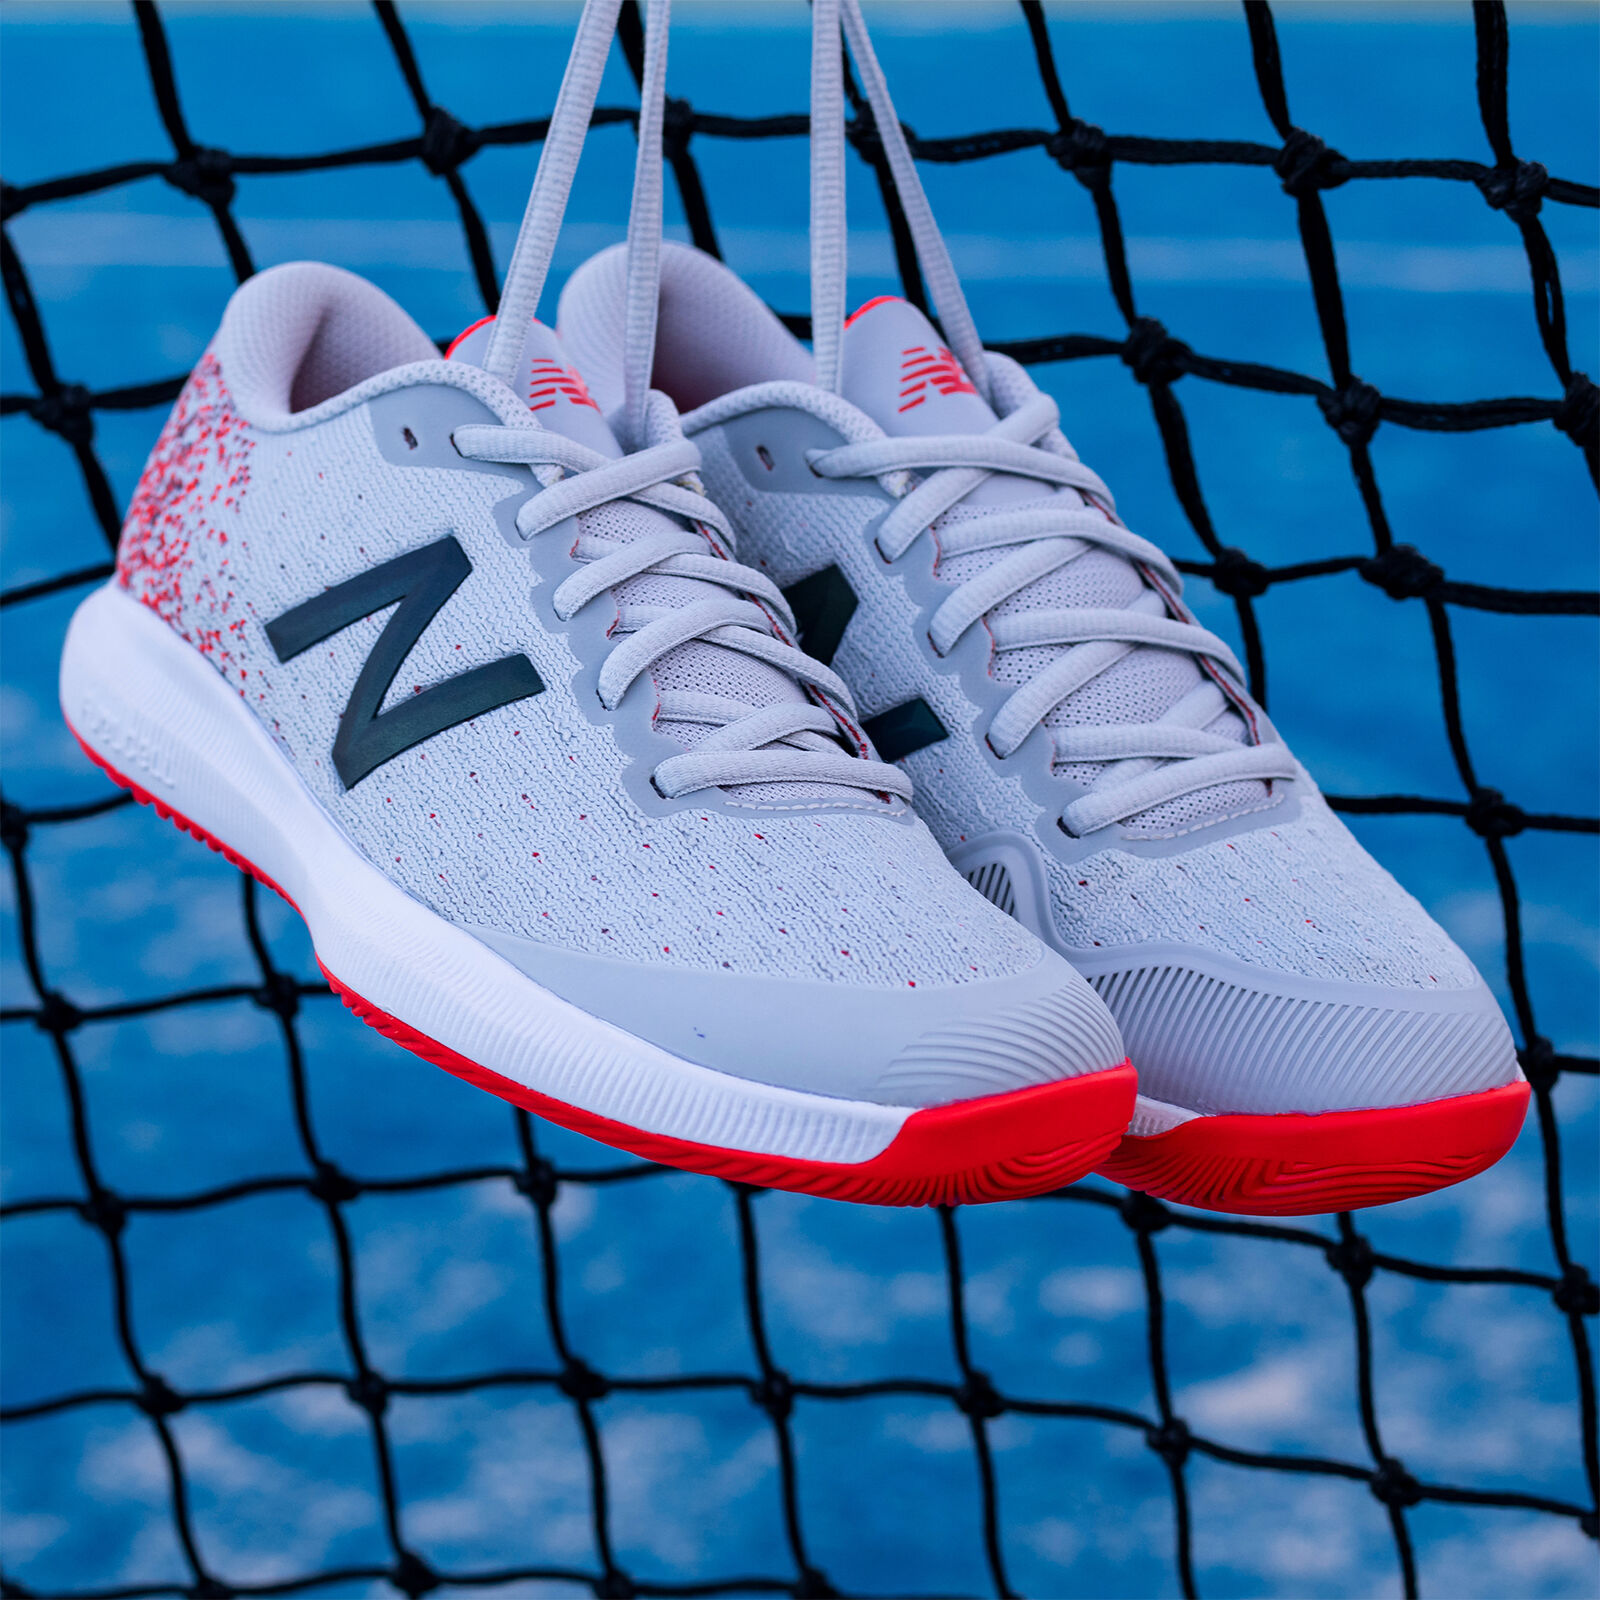 New Tennis Gear for Men and Women - New